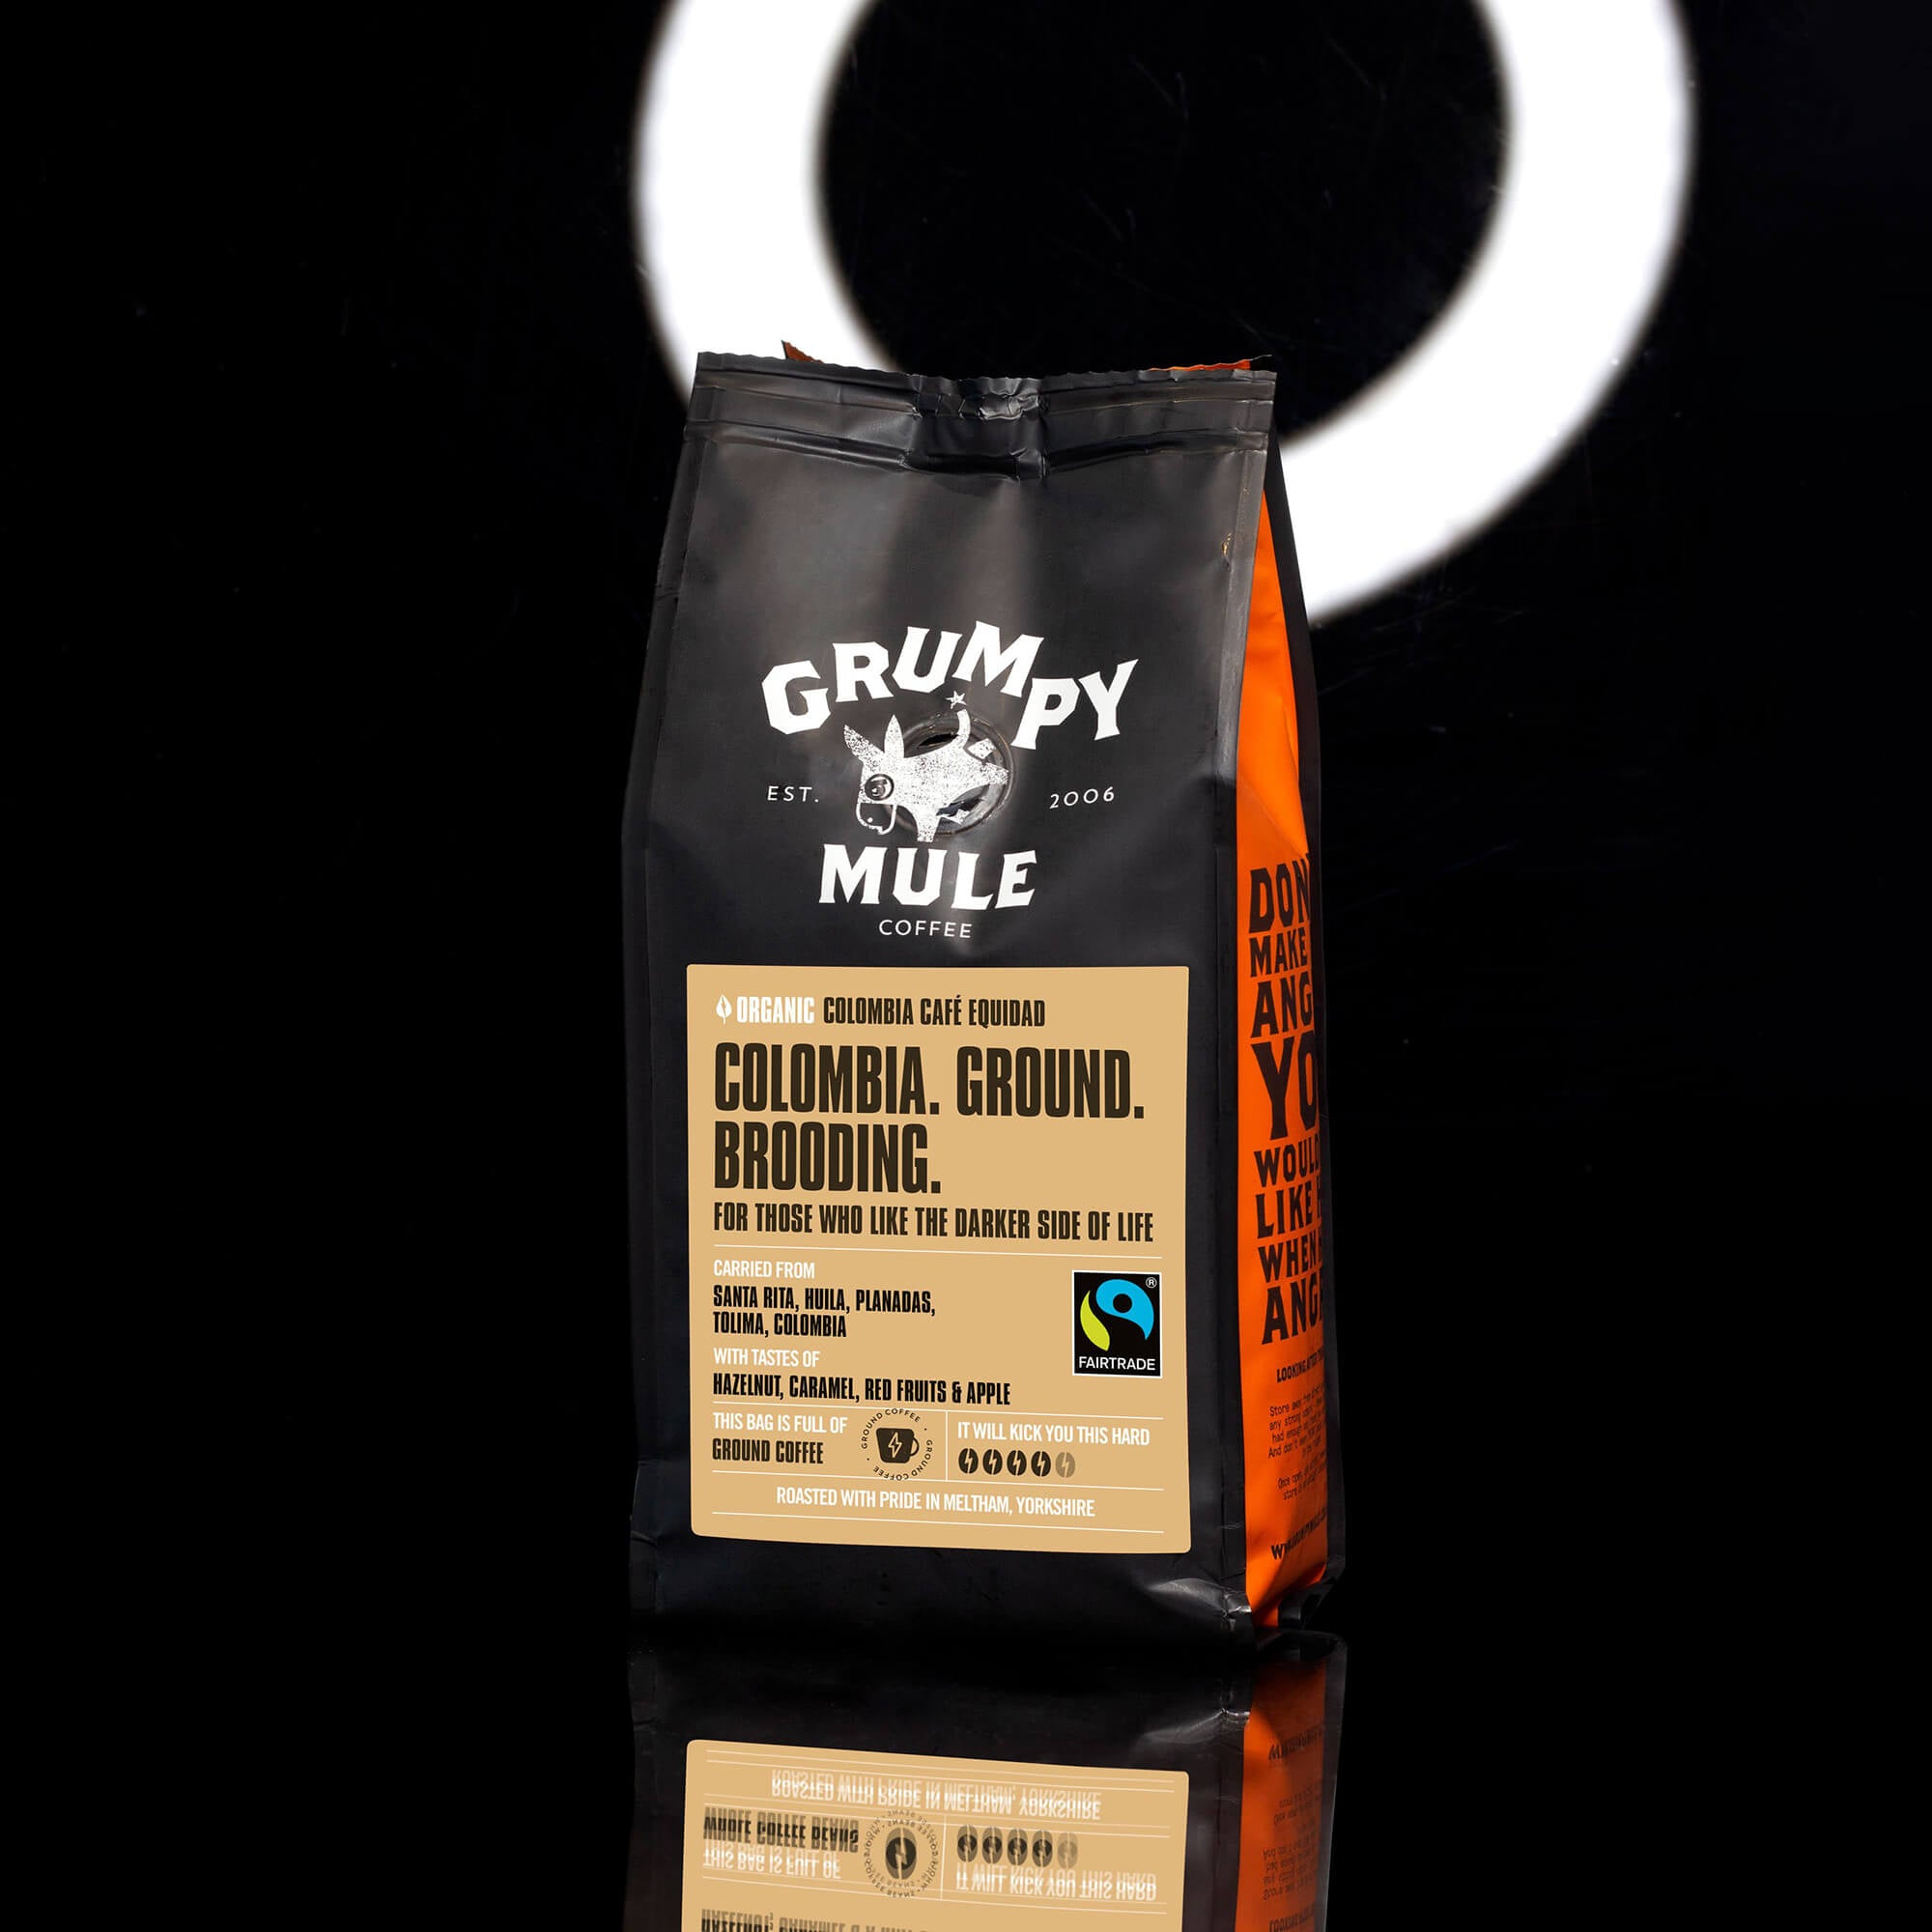 Organic Colombia Equidad Ground Coffee - Grumpy Mule